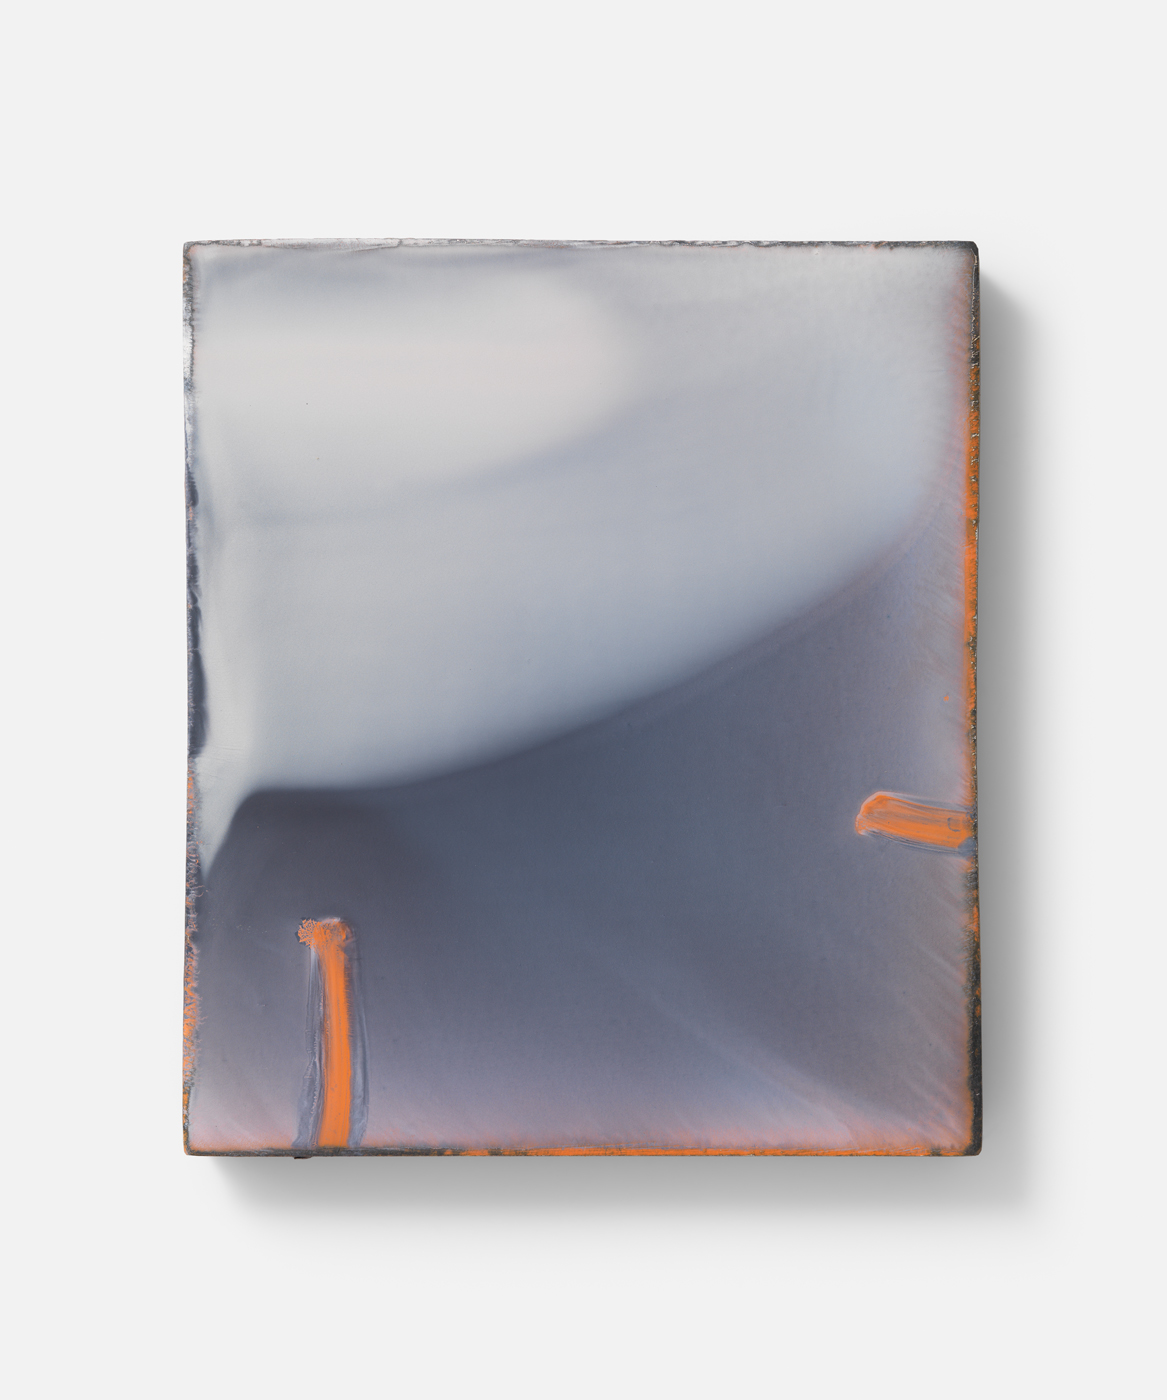 Markus Amm Untitled 2014 Oil on gesso board 35 x 30 cm / 13.7 x 11.8 in